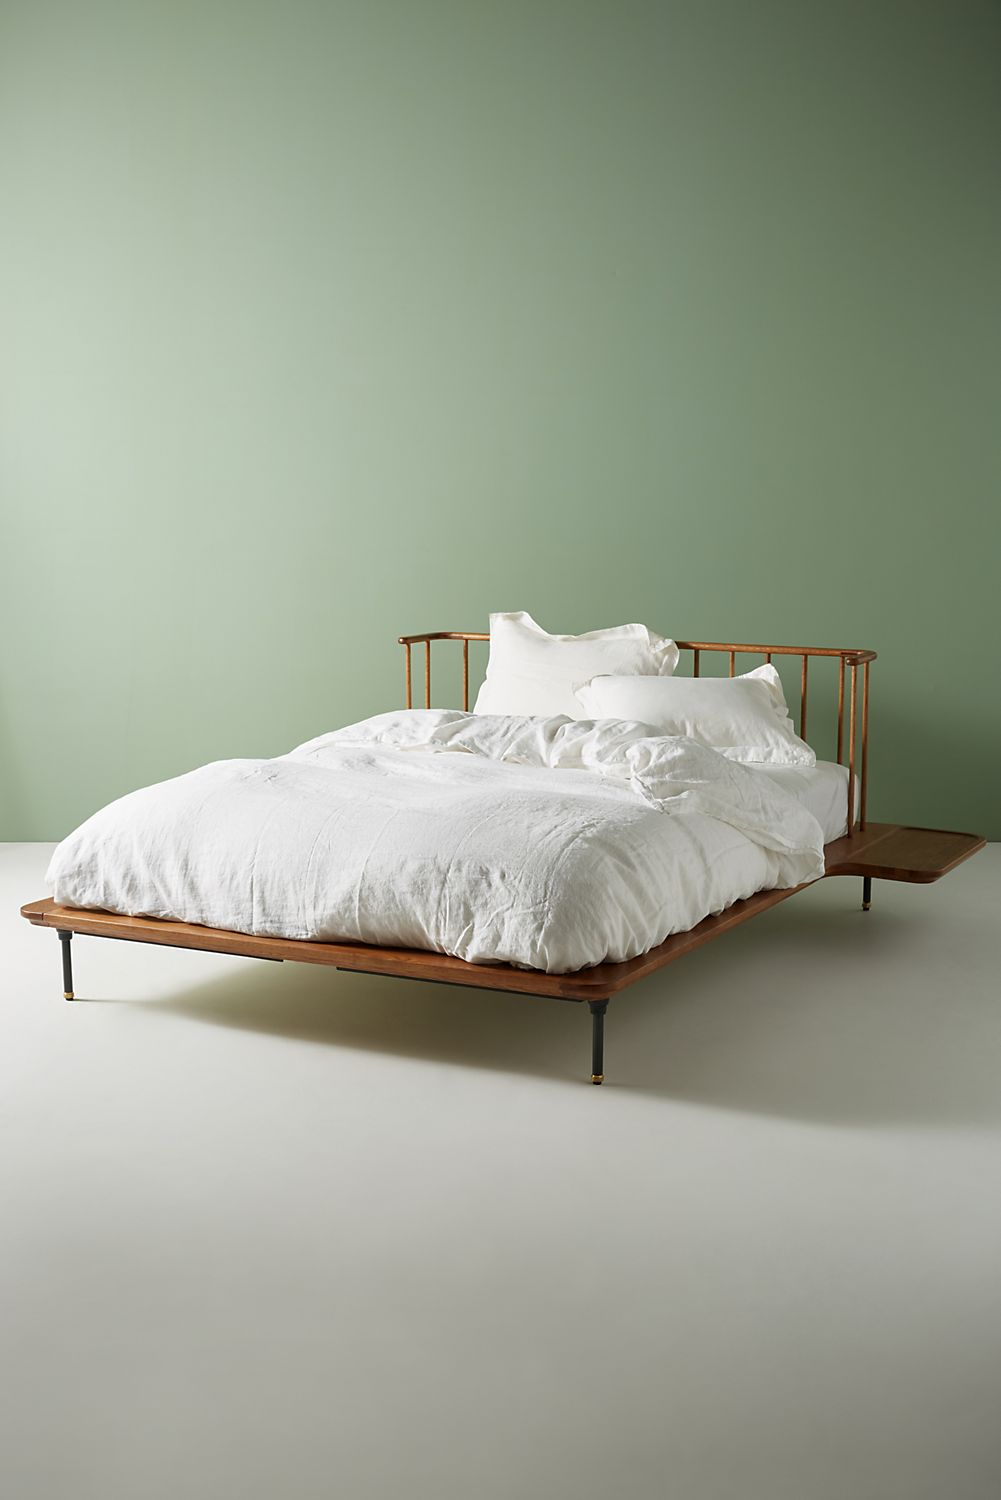 Diy Minimalist Bed Frame The 20 Best Bed Frames For Modern And Contemporary Bedrooms